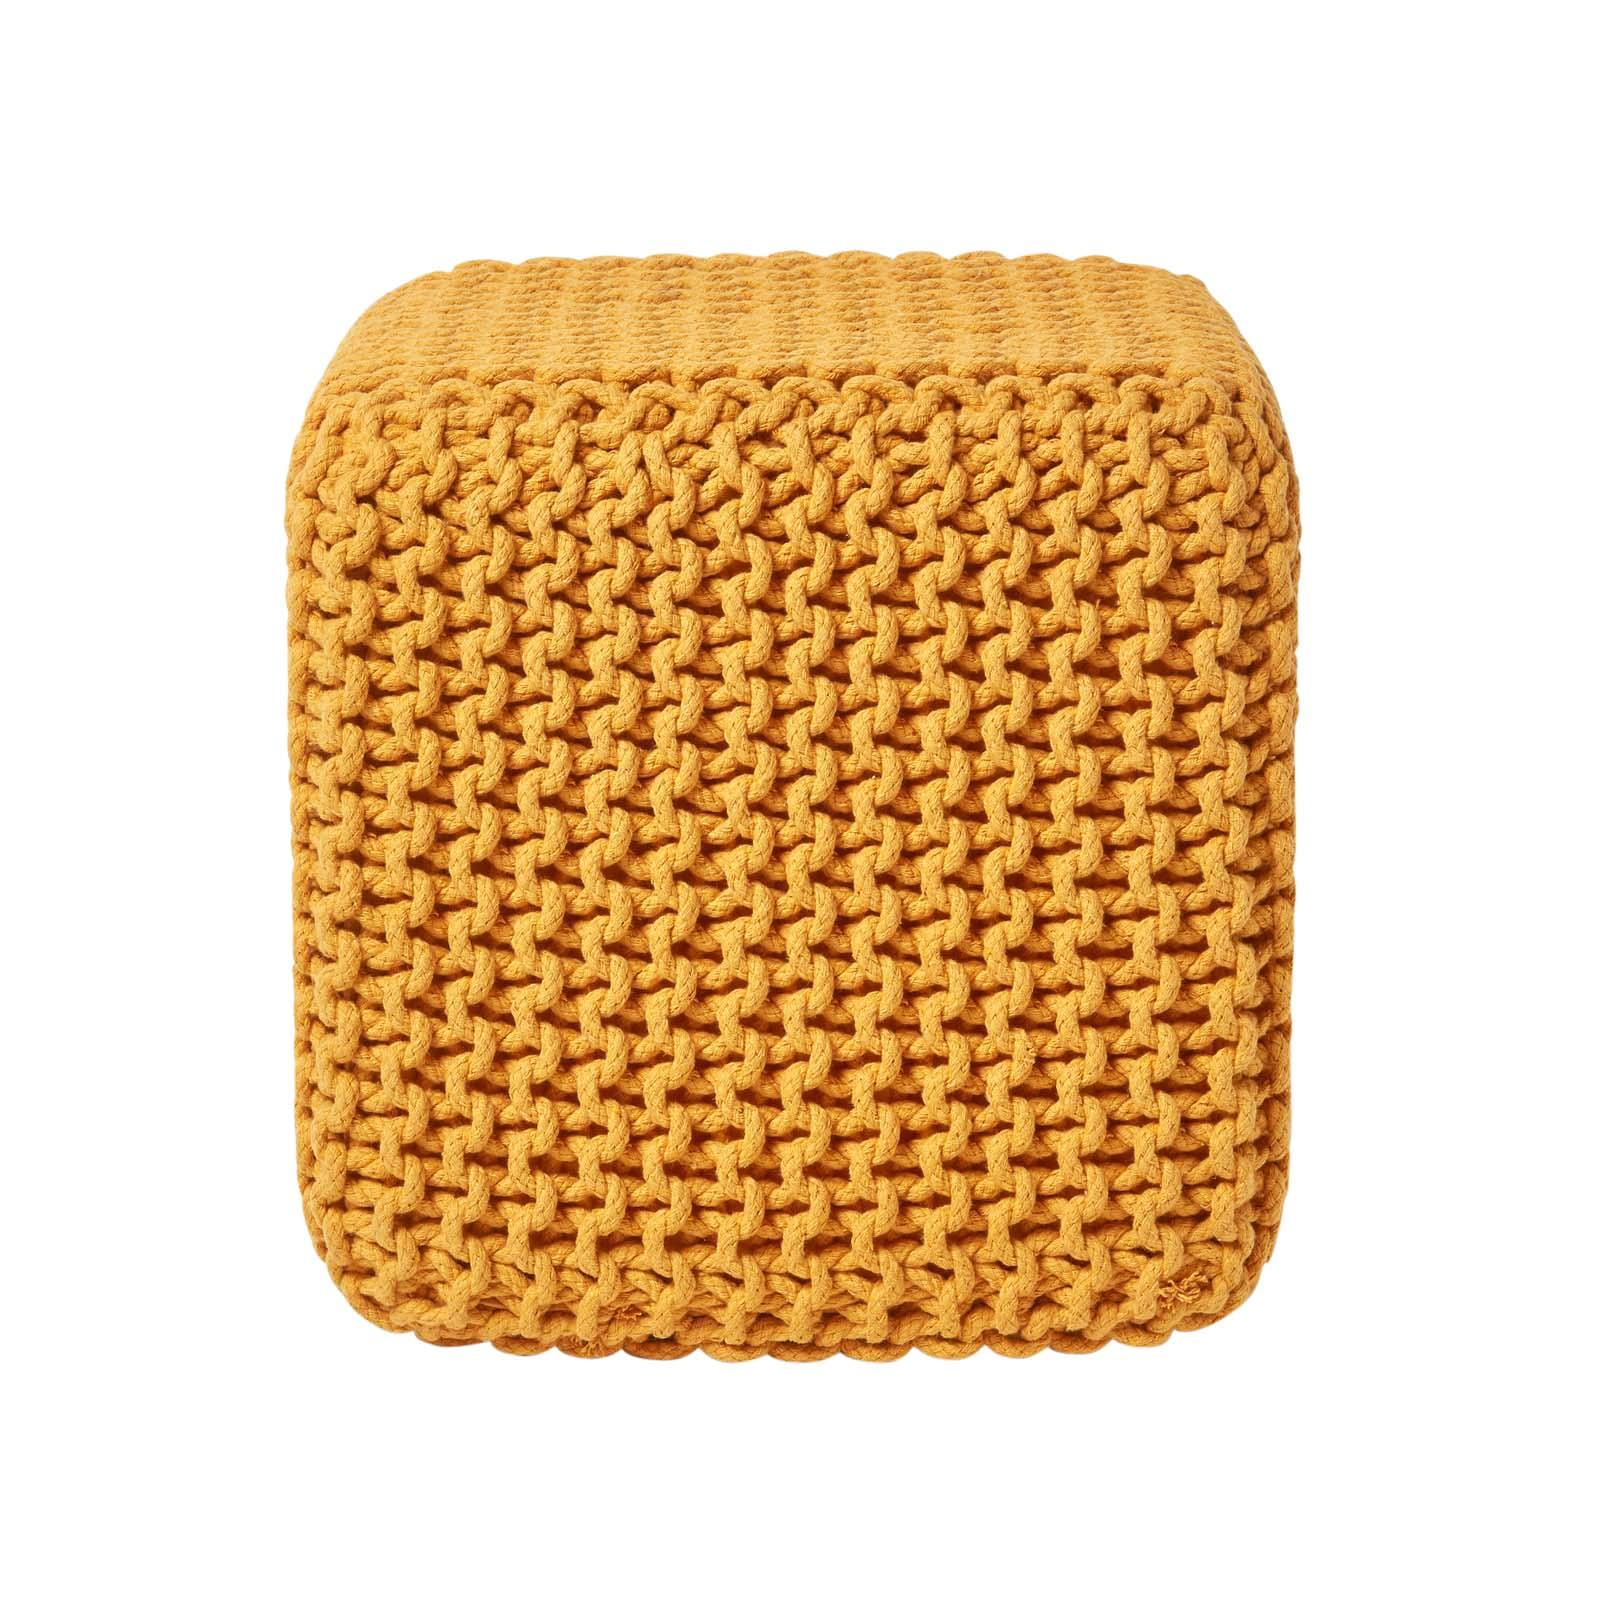 Hand-Knitted-100-Cotton-Pouffes-Round-Sphere-Or-Cube-Square-Chunky-Footstools thumbnail 86